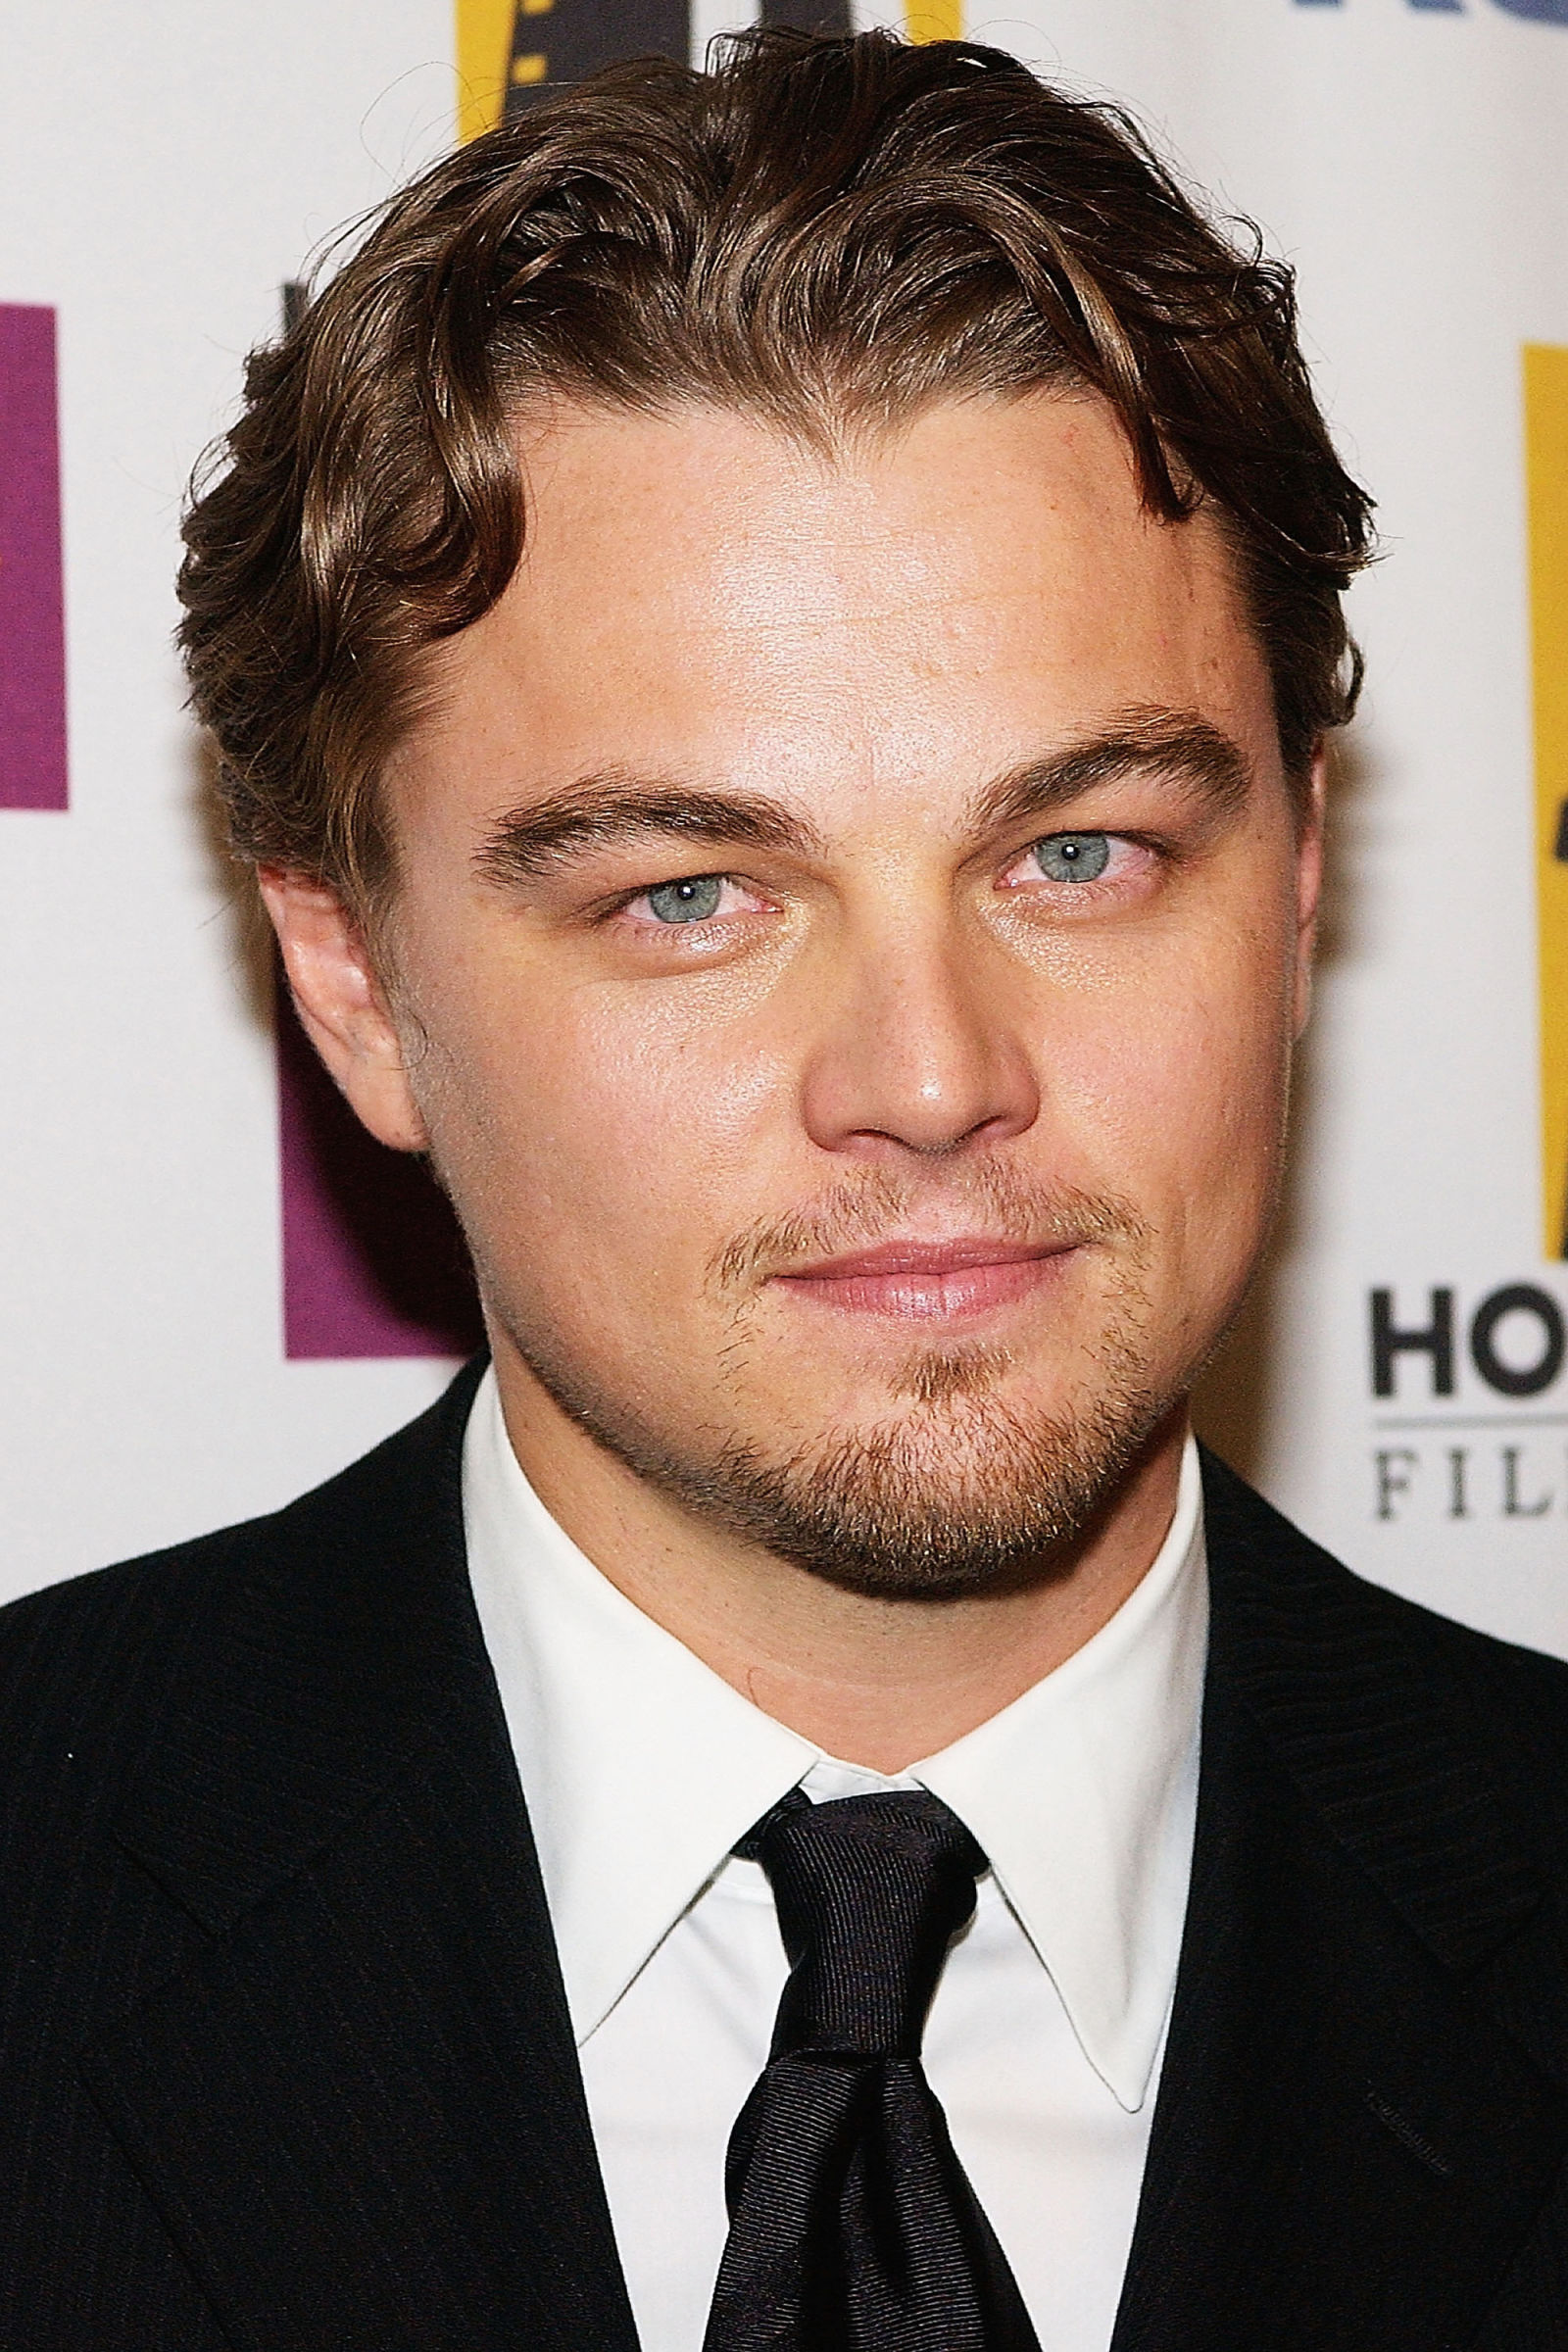 Leo DiCaprio Haircut Model Ideas For Young Men